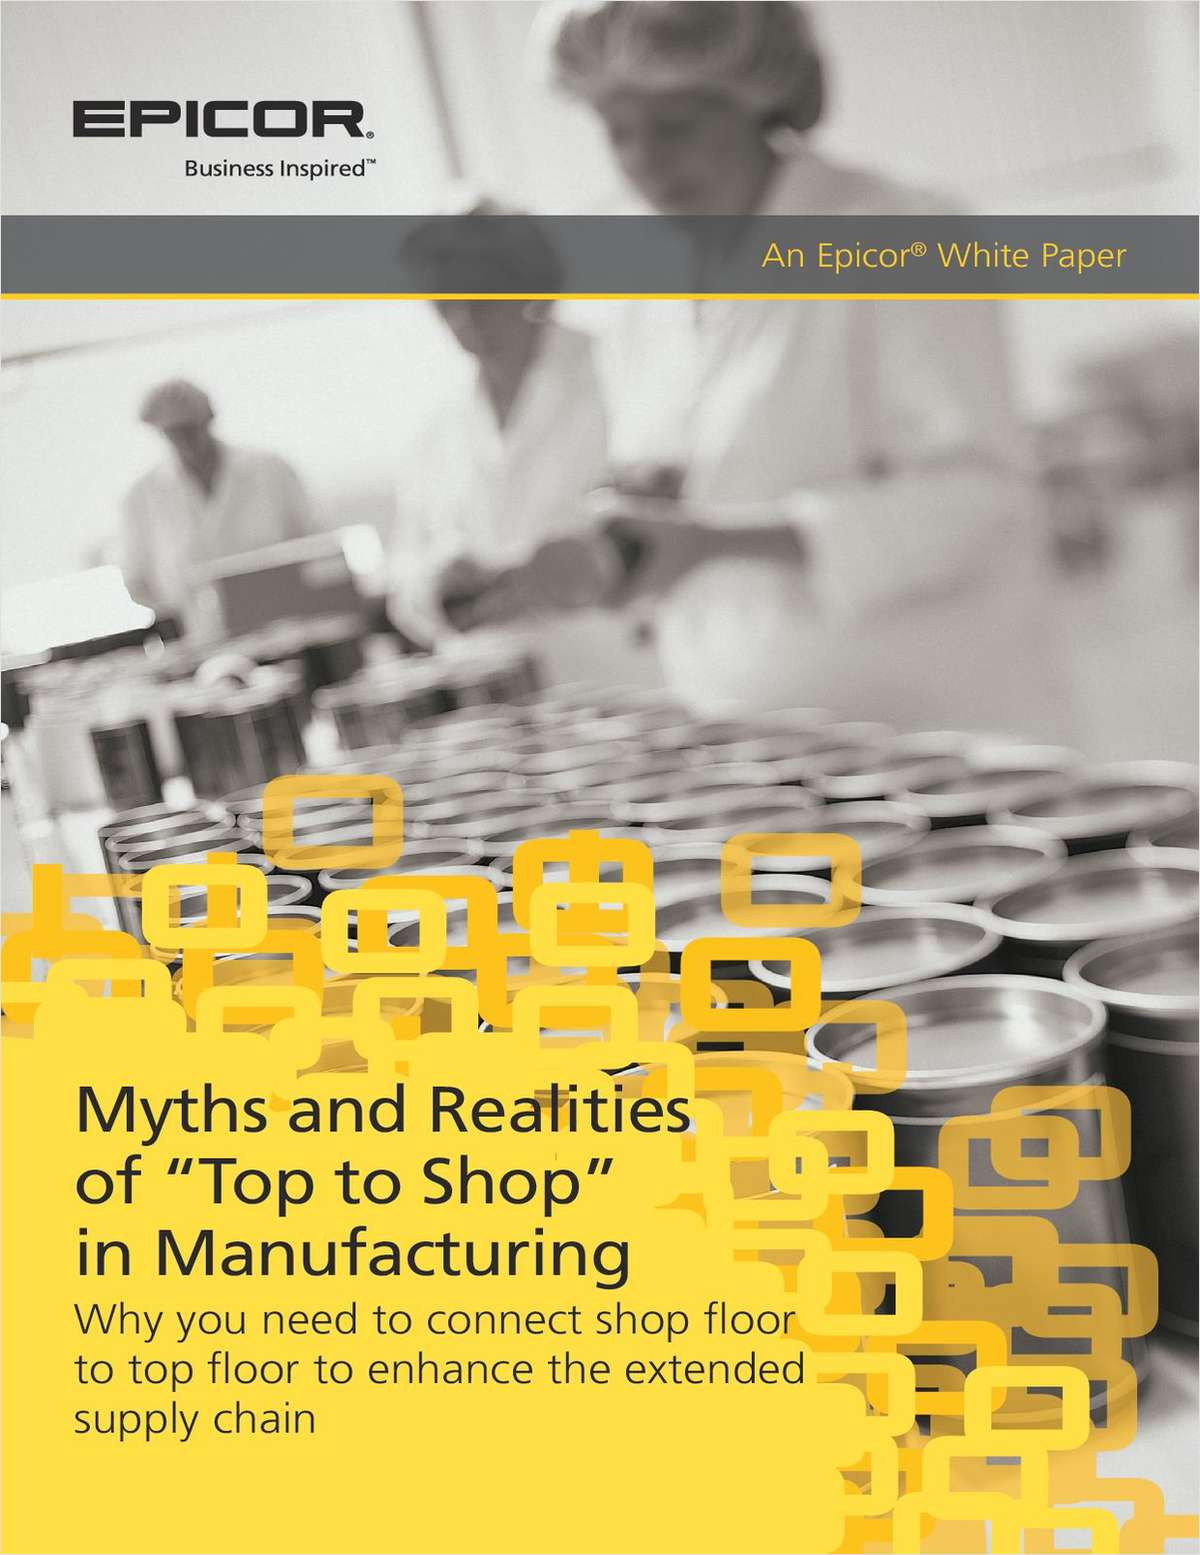 7 Myths & Realities of 'Top to Shop' in Manufacturing